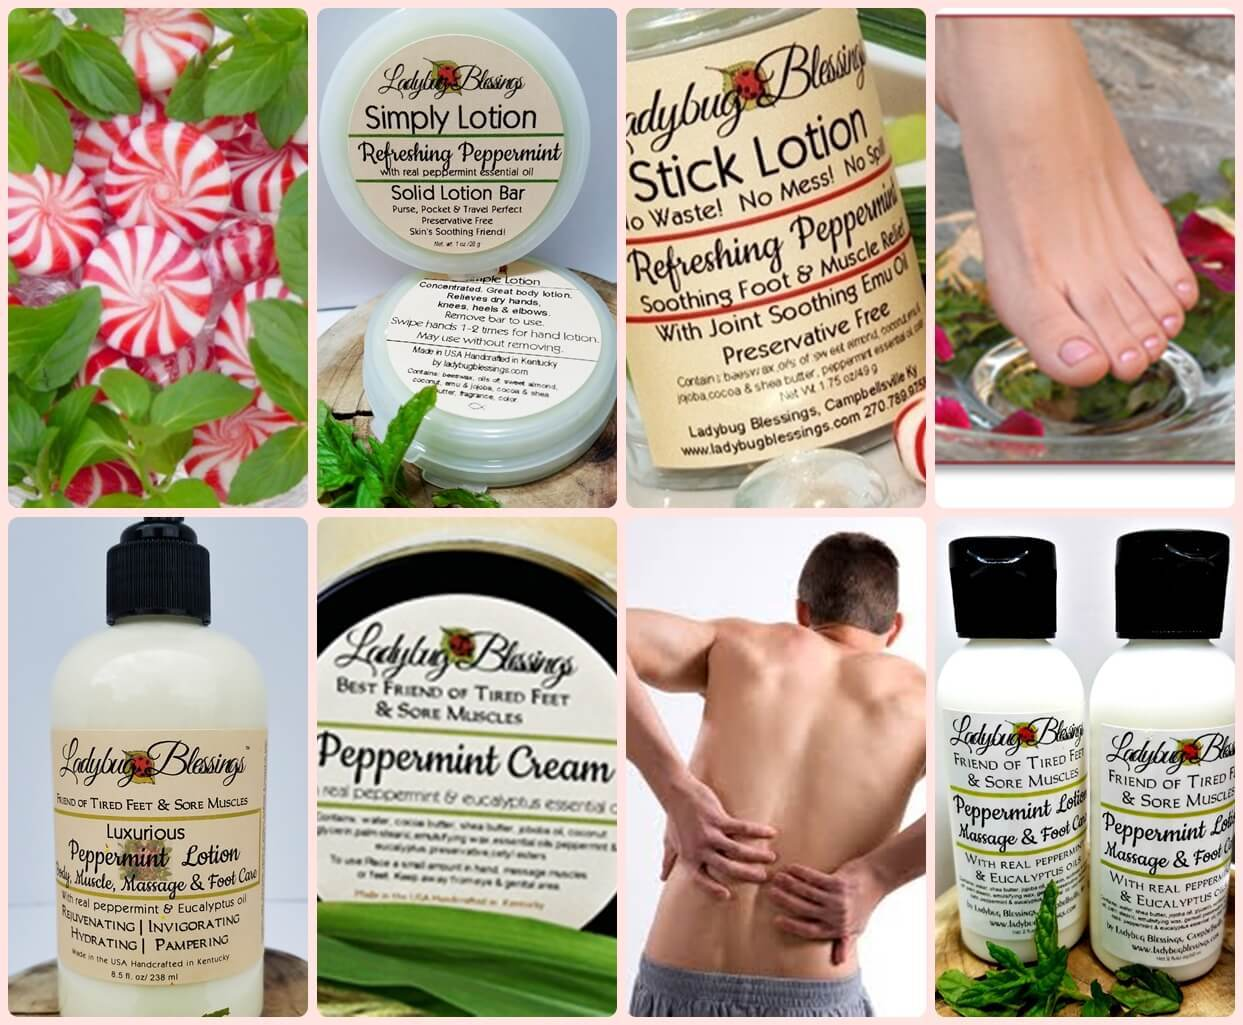 peppermint lotion, peppermint cooling lotion, peppermint foot lotion, natural peppemint lotion